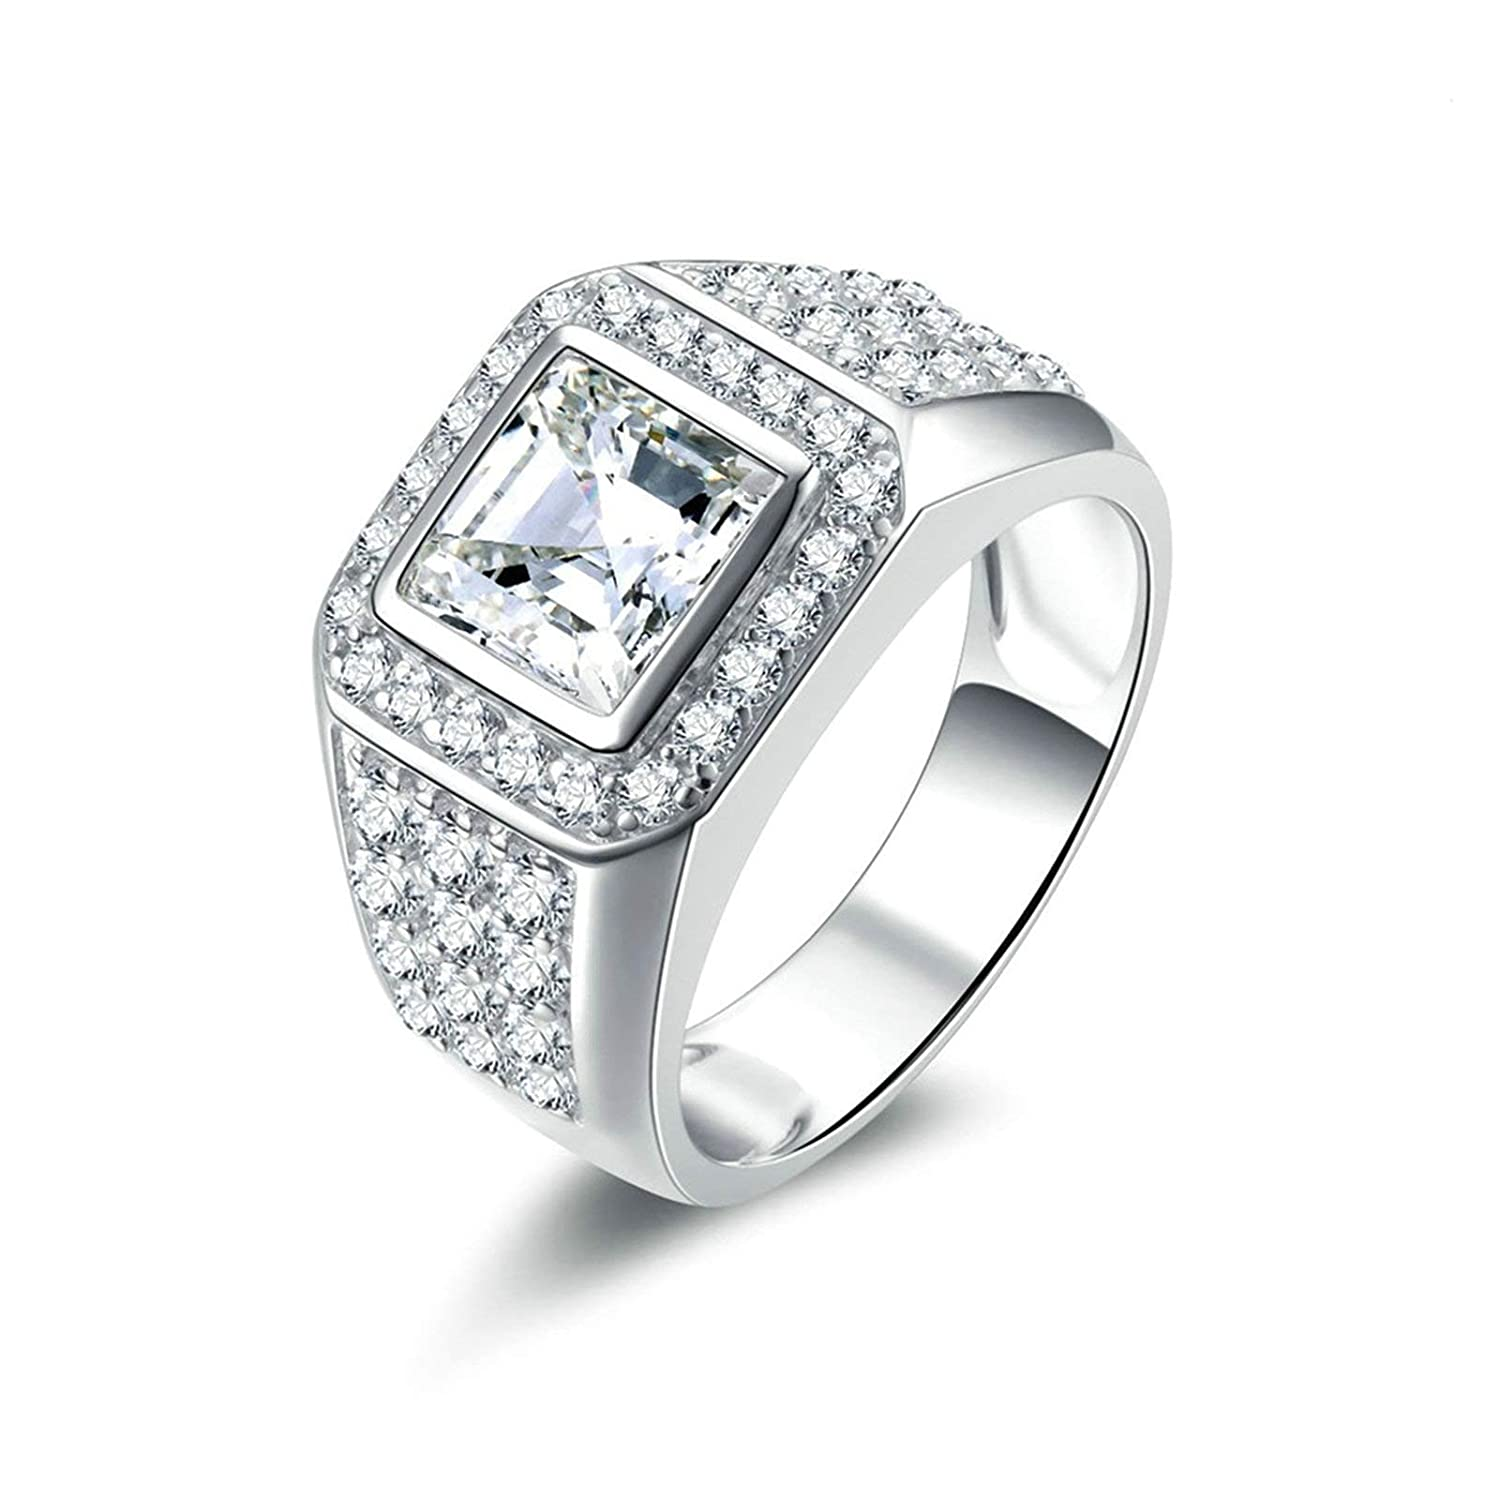 d103946a7d88c Aooaz Jewelry Wedding Ring Silver Material Sister Ring Square Ring ...